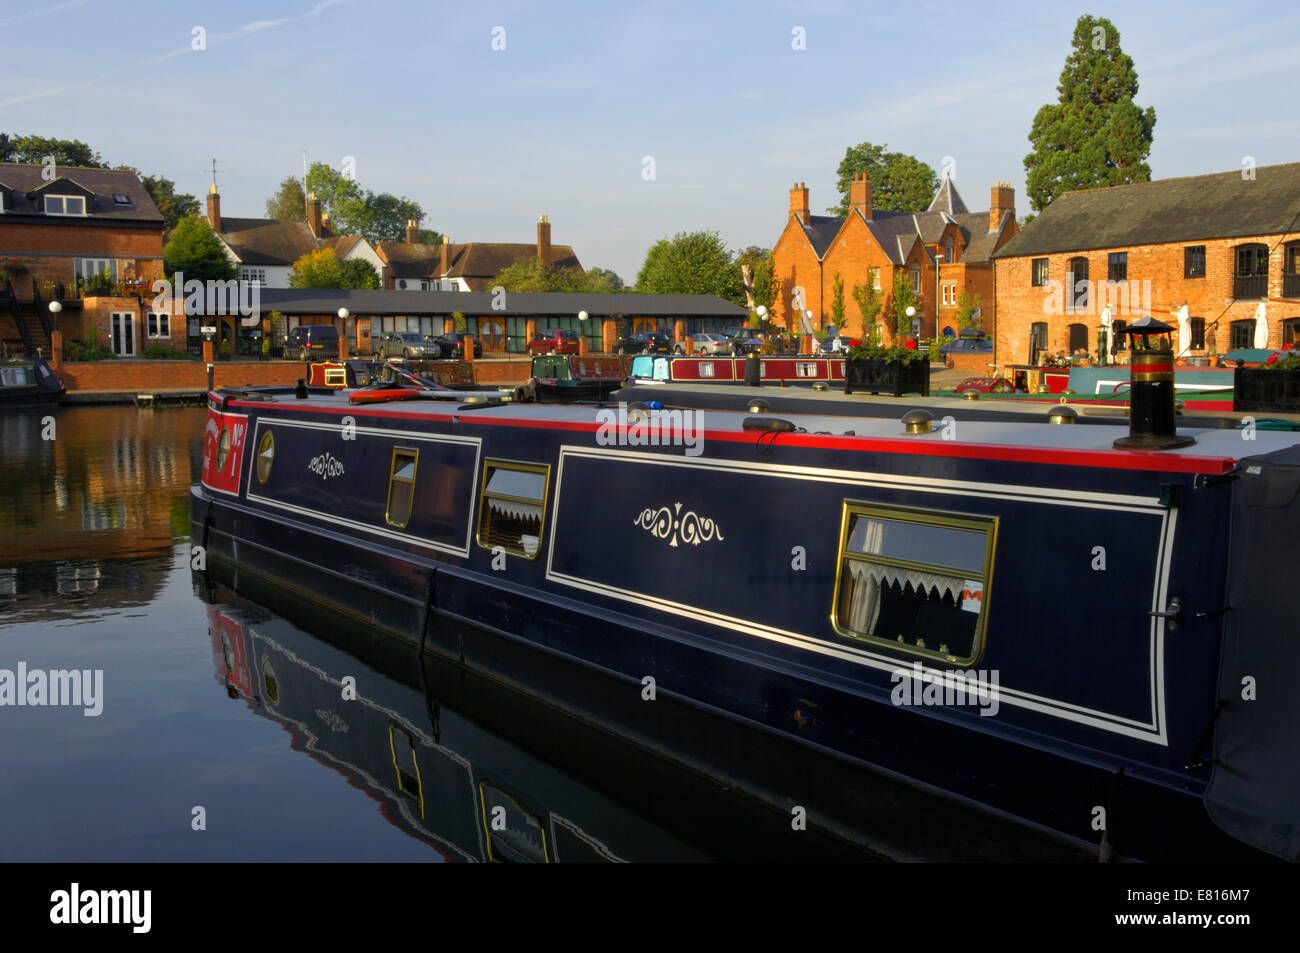 The Union Wharf canal basin in Market Harborough, Leicestershire, England - Stock Image